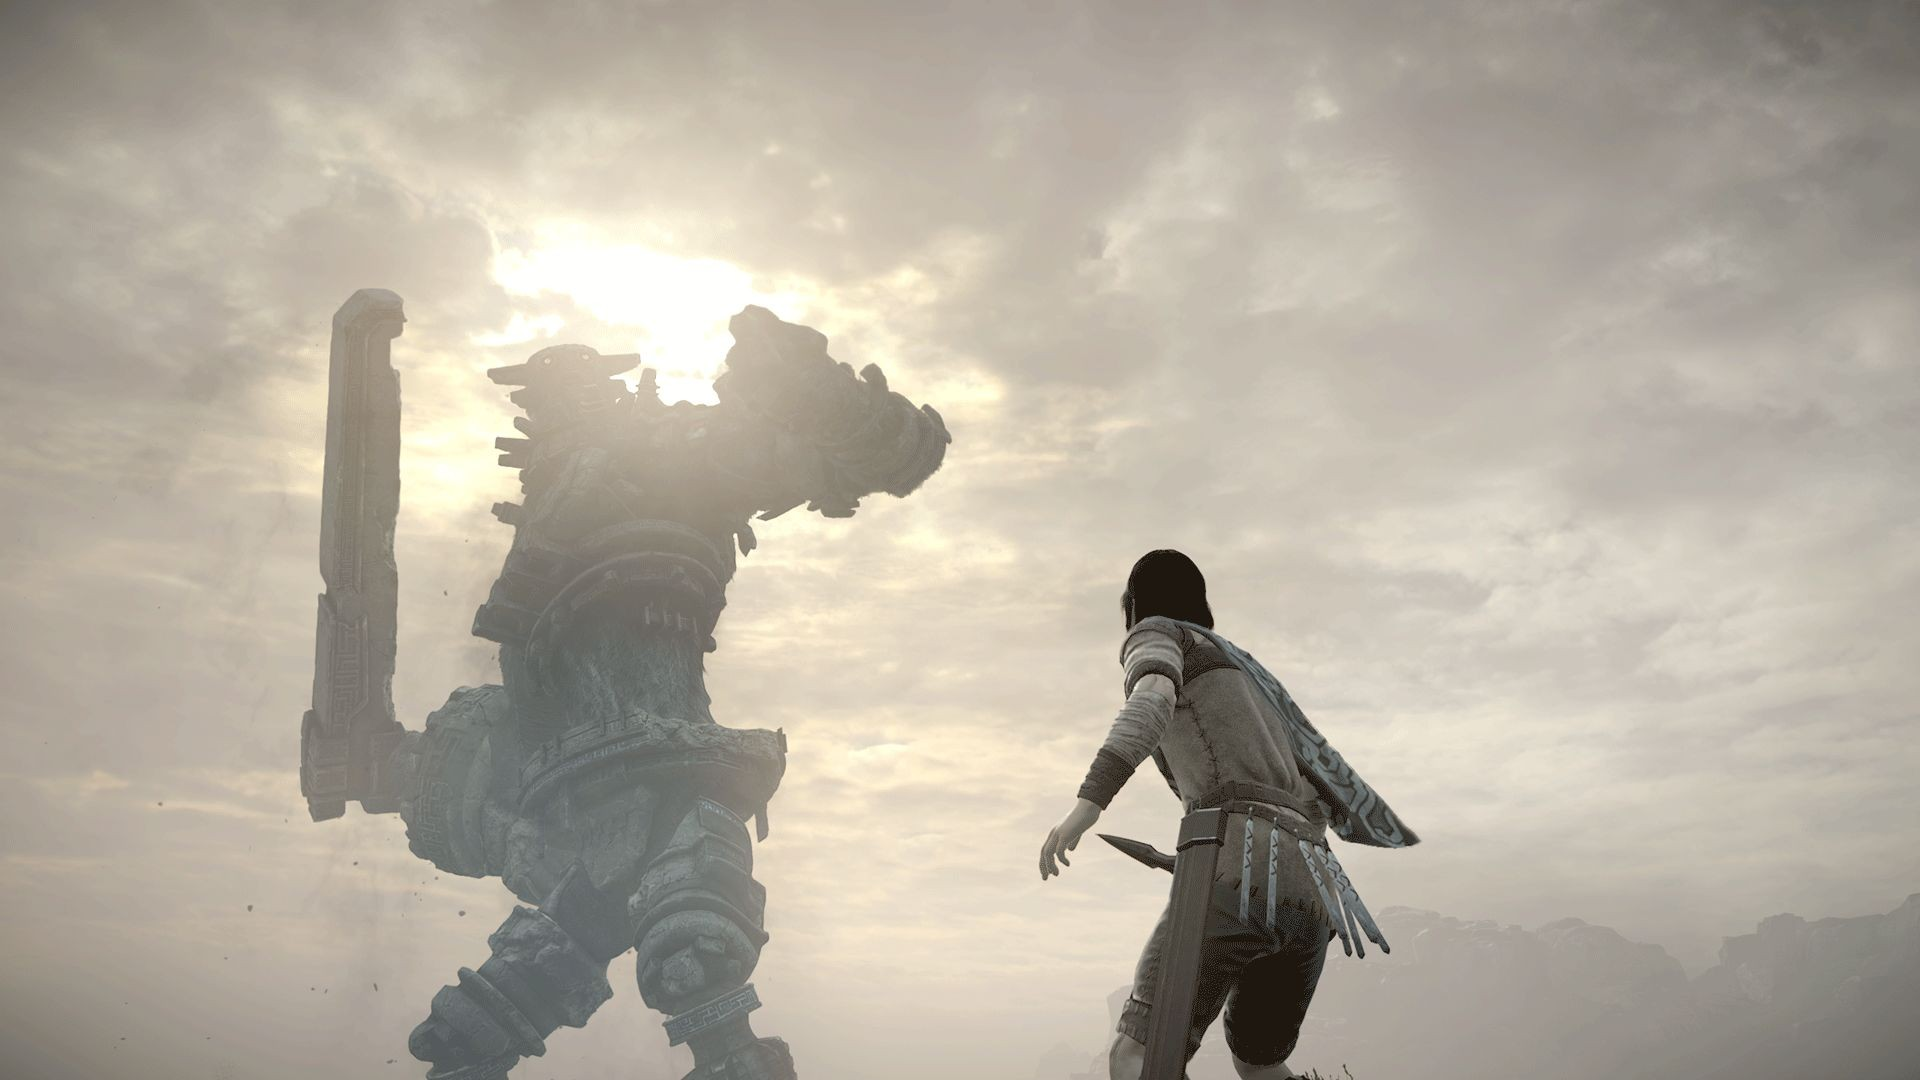 shadow-of-the-colossus-ps4-2018